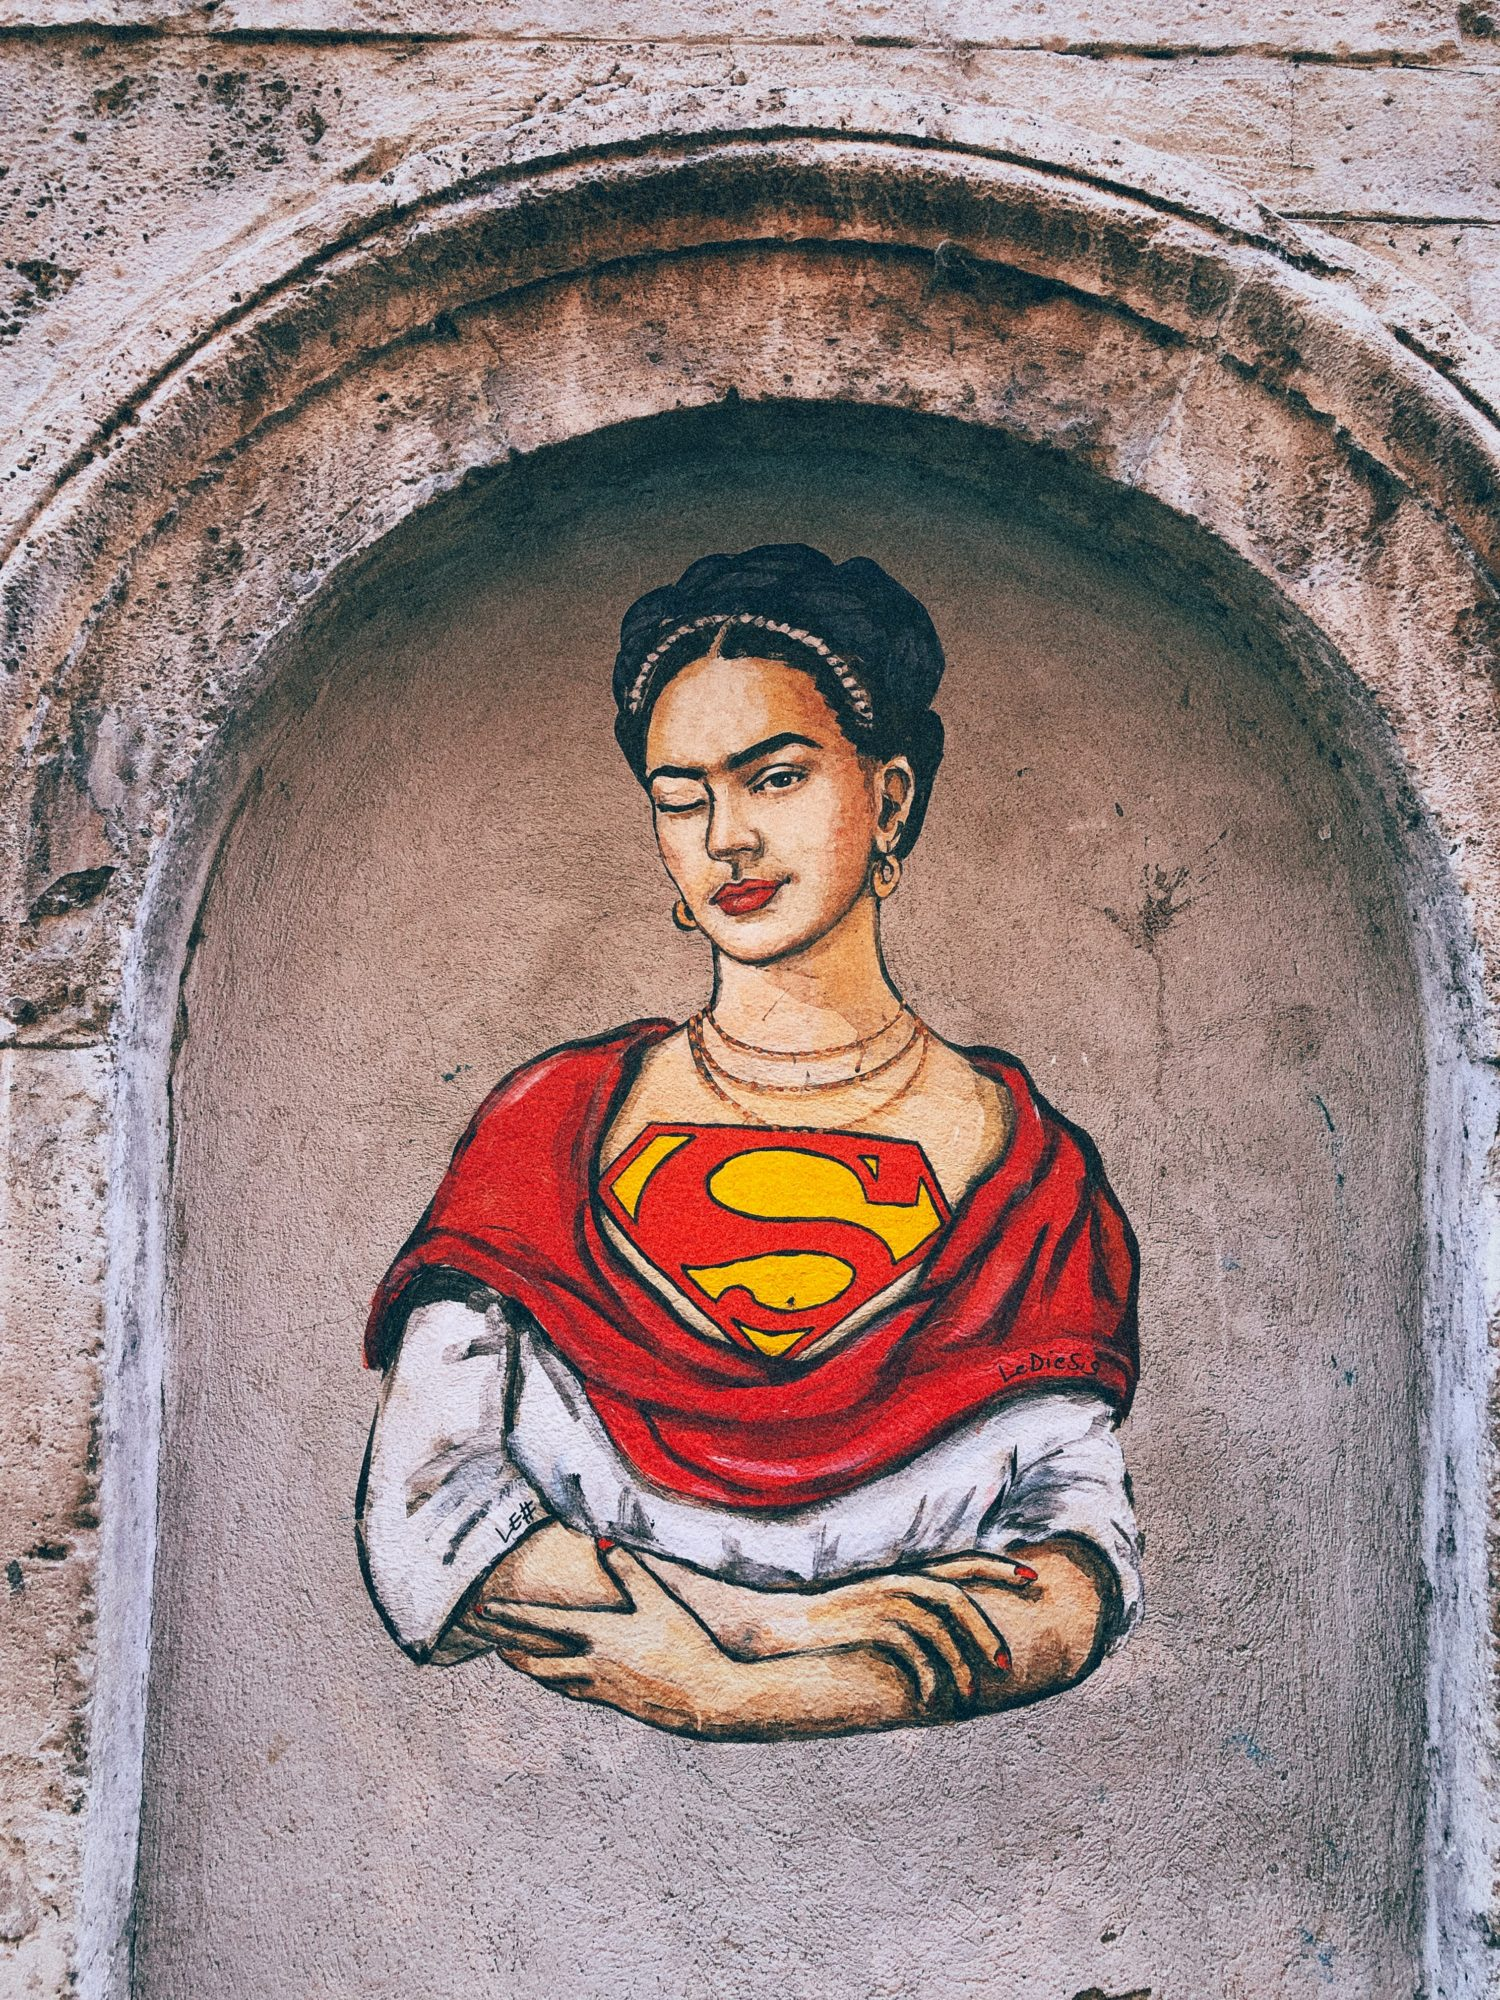 Frida Kahlo Superwoman: Wandbild in Florenz